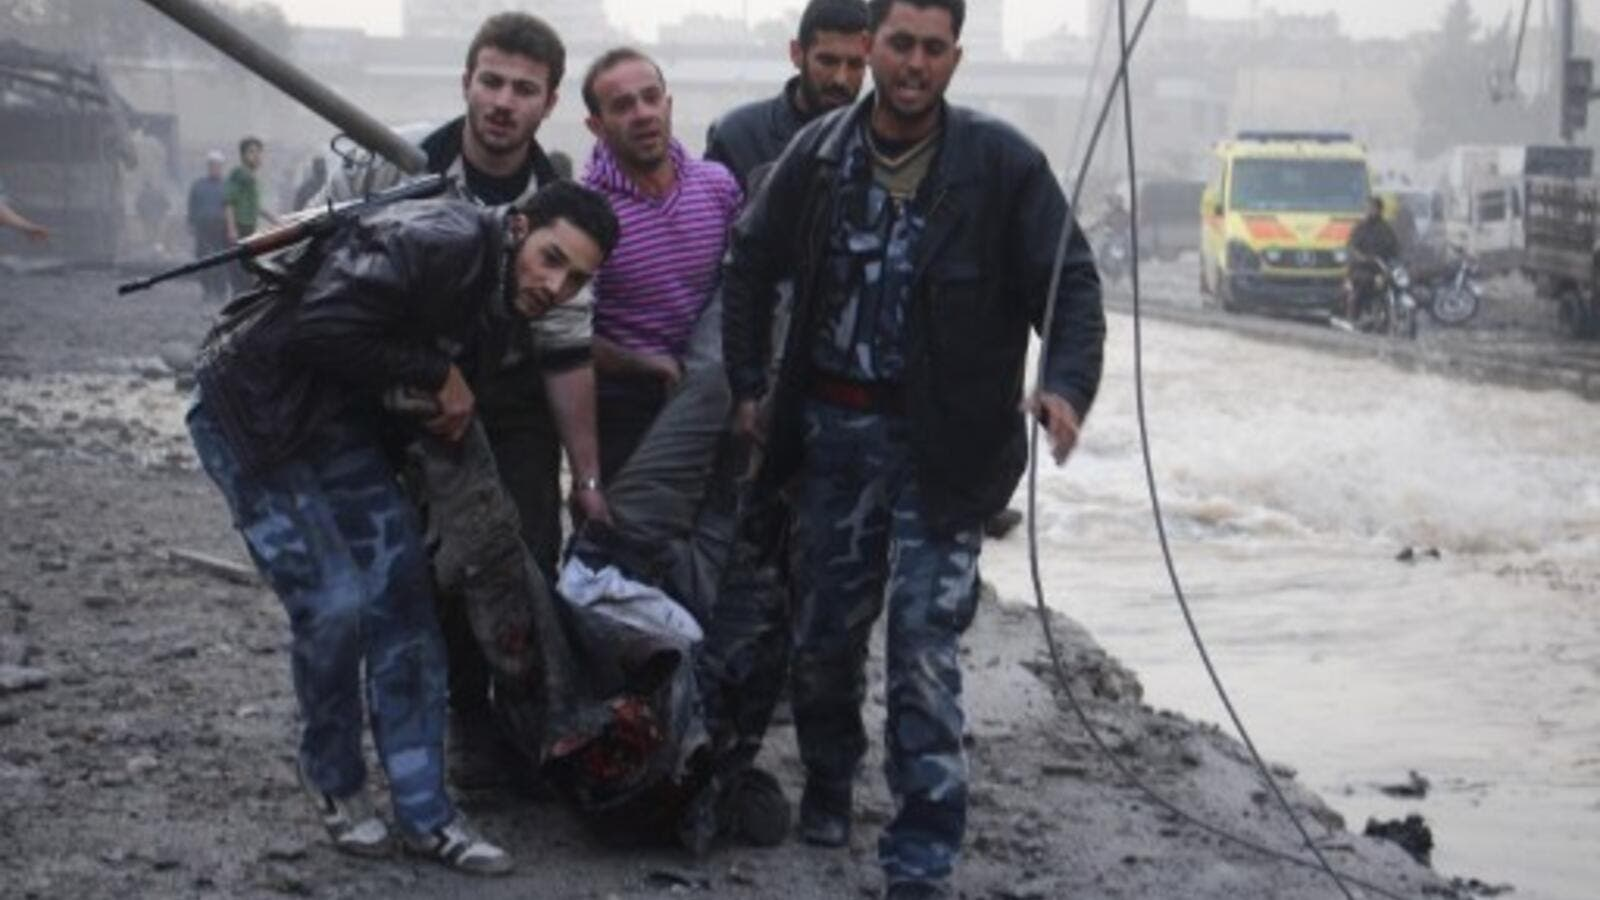 Rebels and civilians carry the body of a man killed after an air strike by pro-government forces on the Syrian city of Aleppo on November 28, 2013. (AFP)